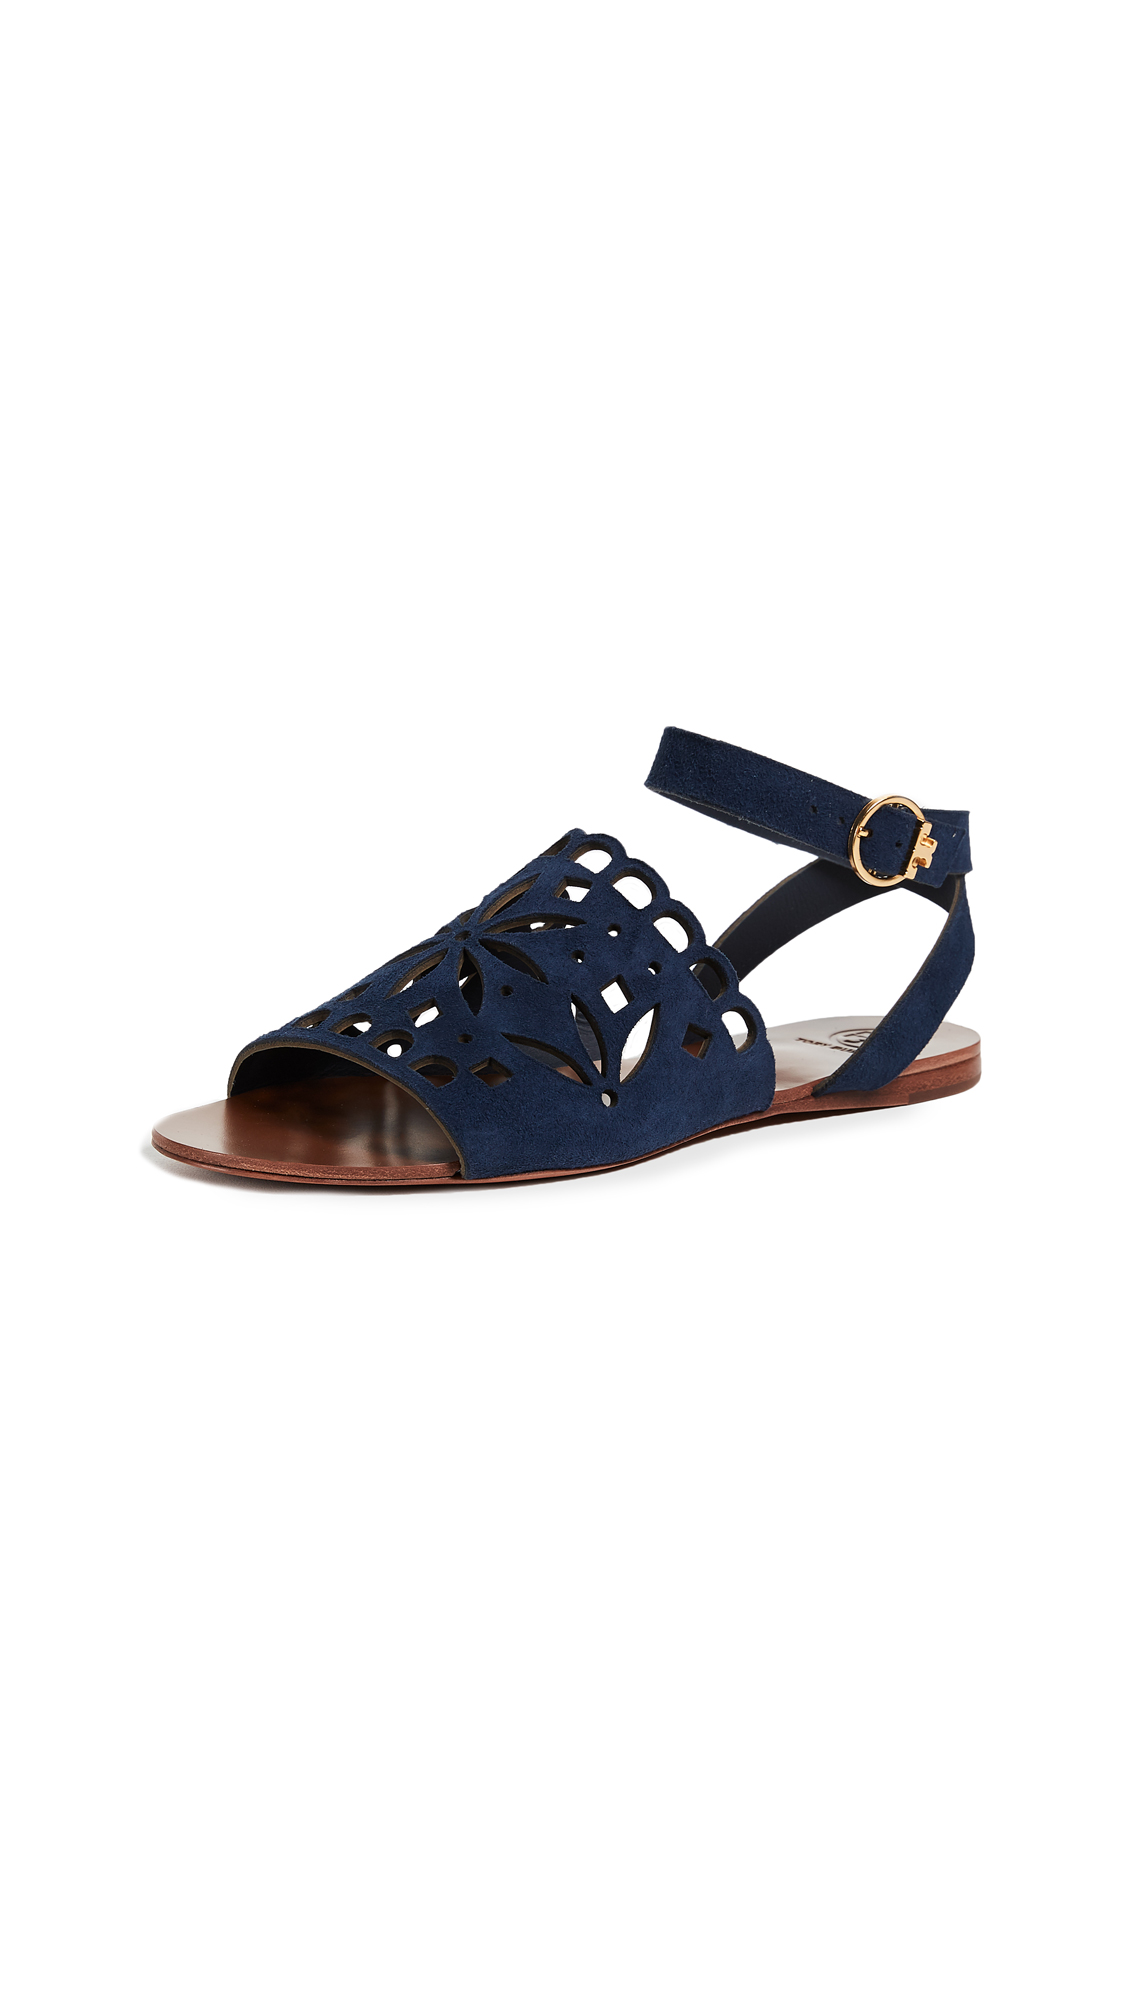 Tory Burch May Flat Sandals - Perfect Navy